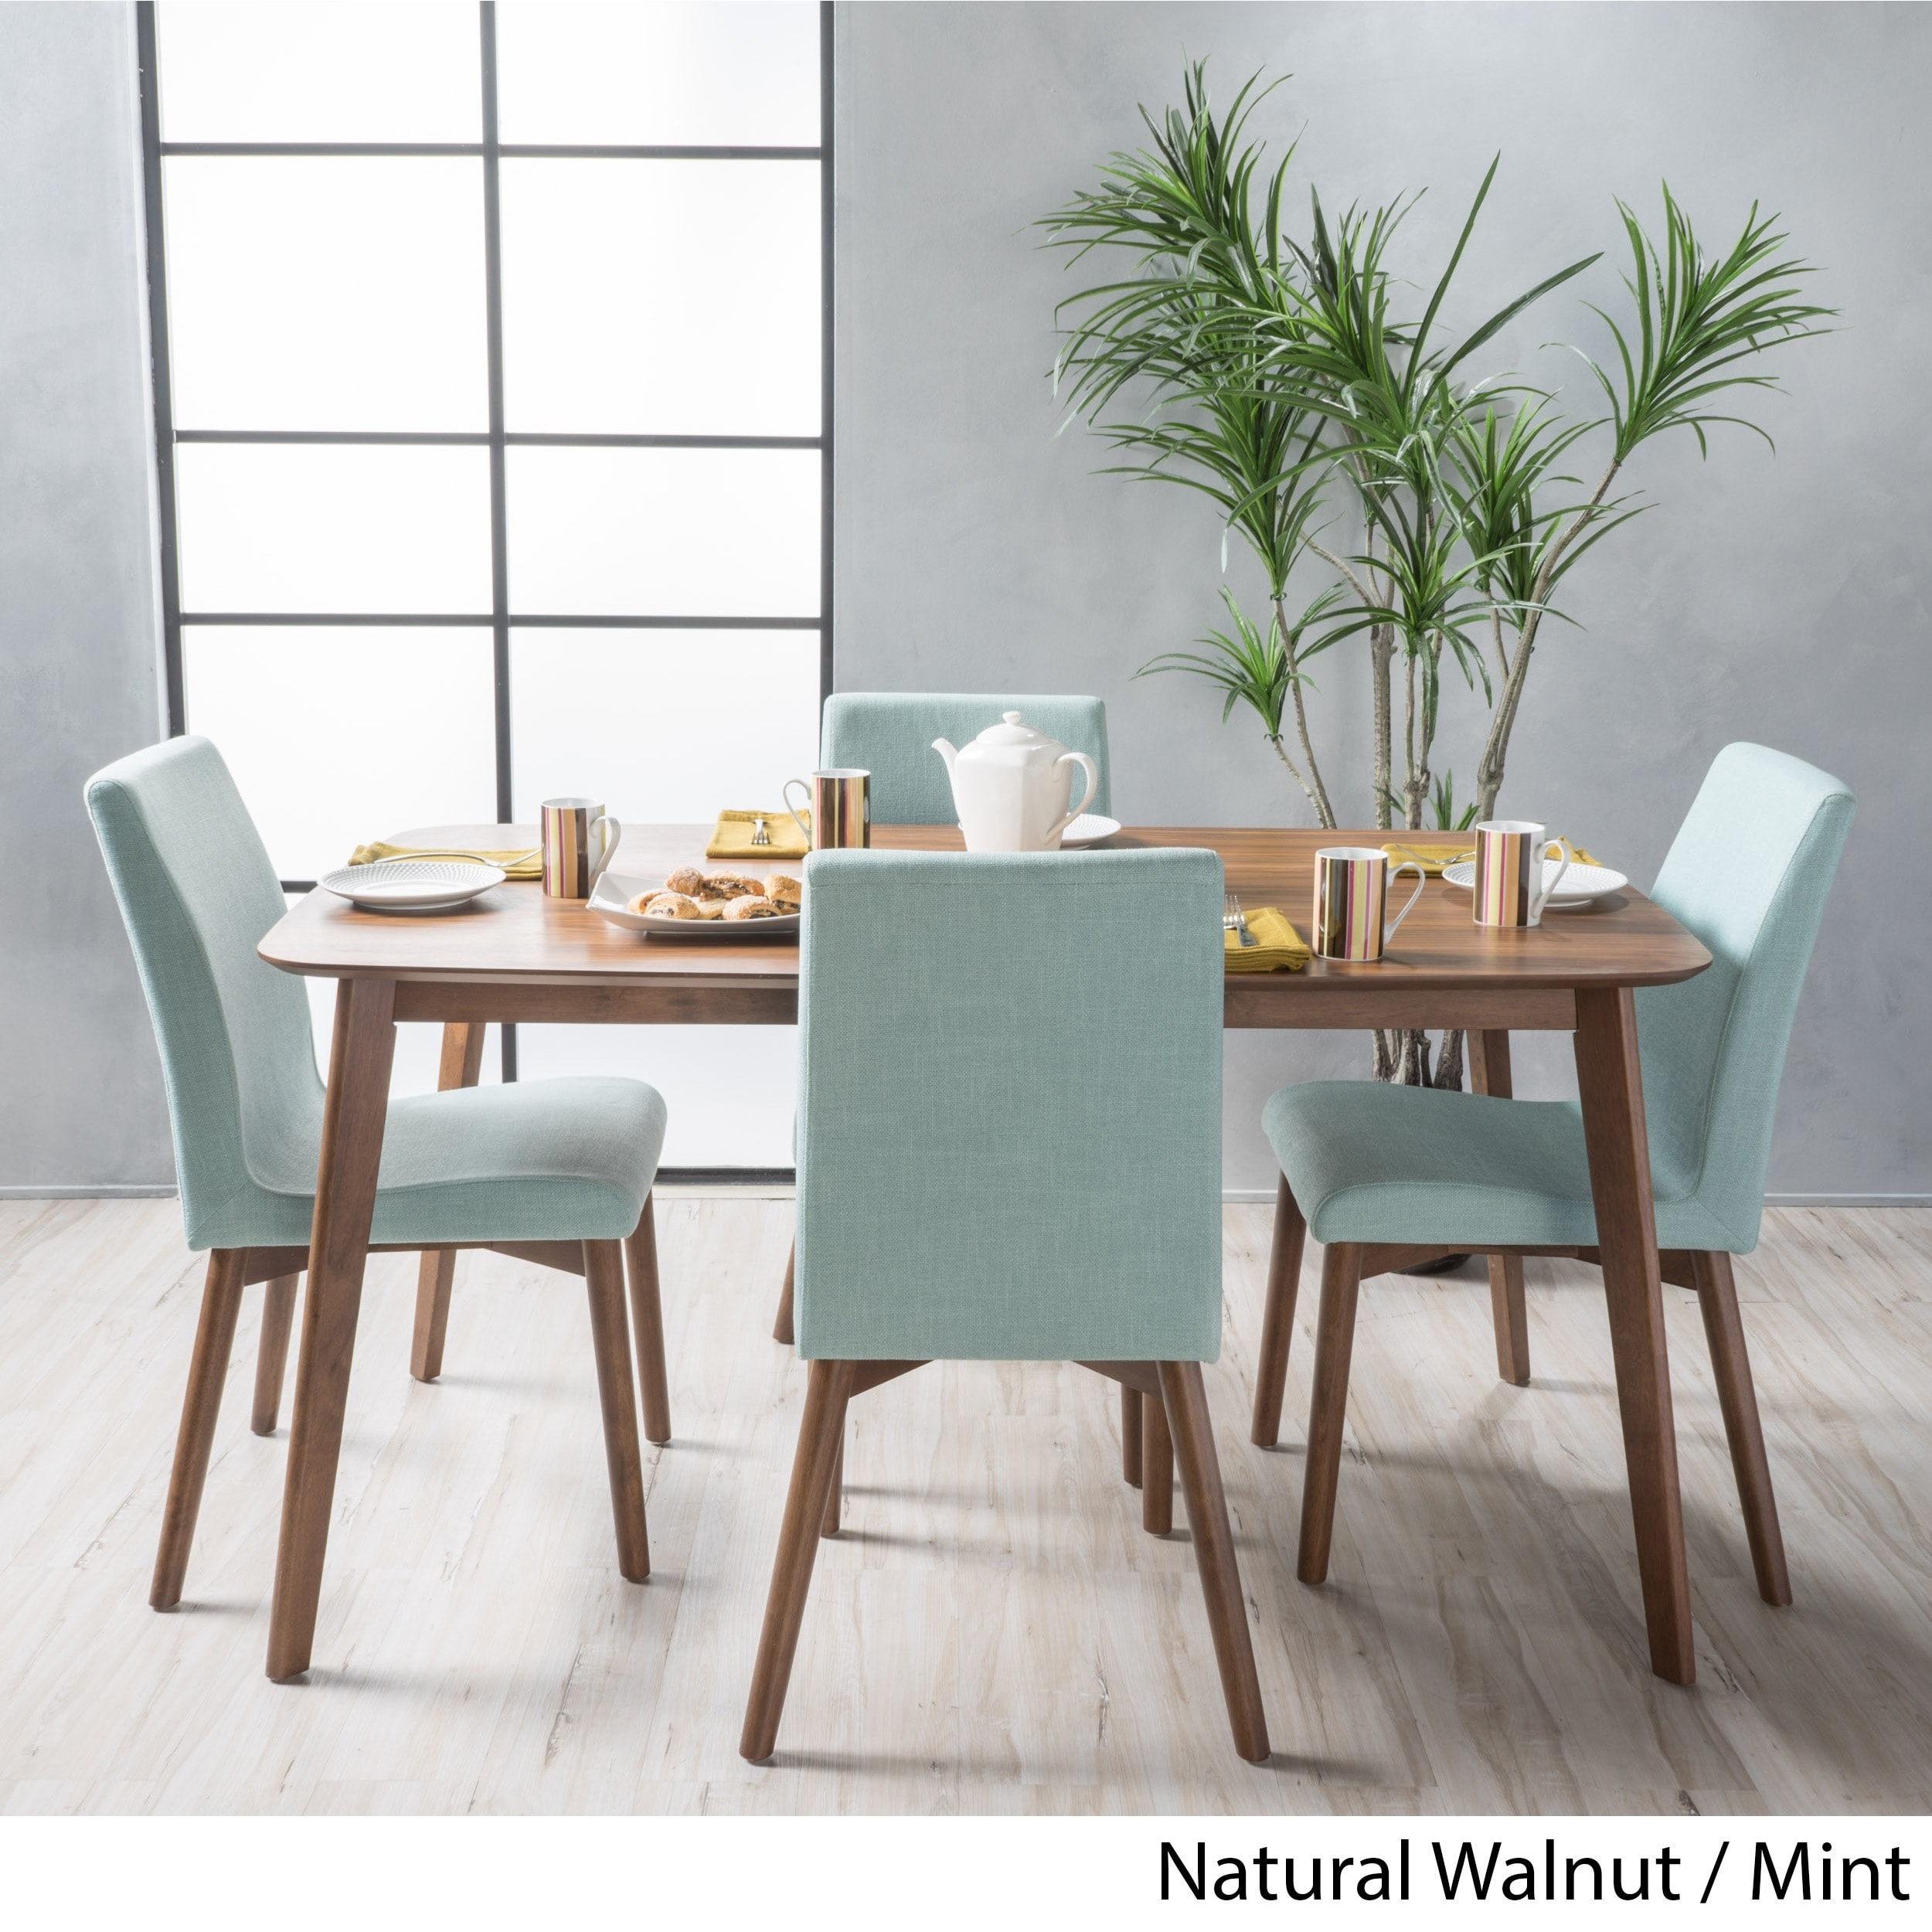 Buy Blue Kitchen & Dining Room Sets Online at Overstock.com | Our ...